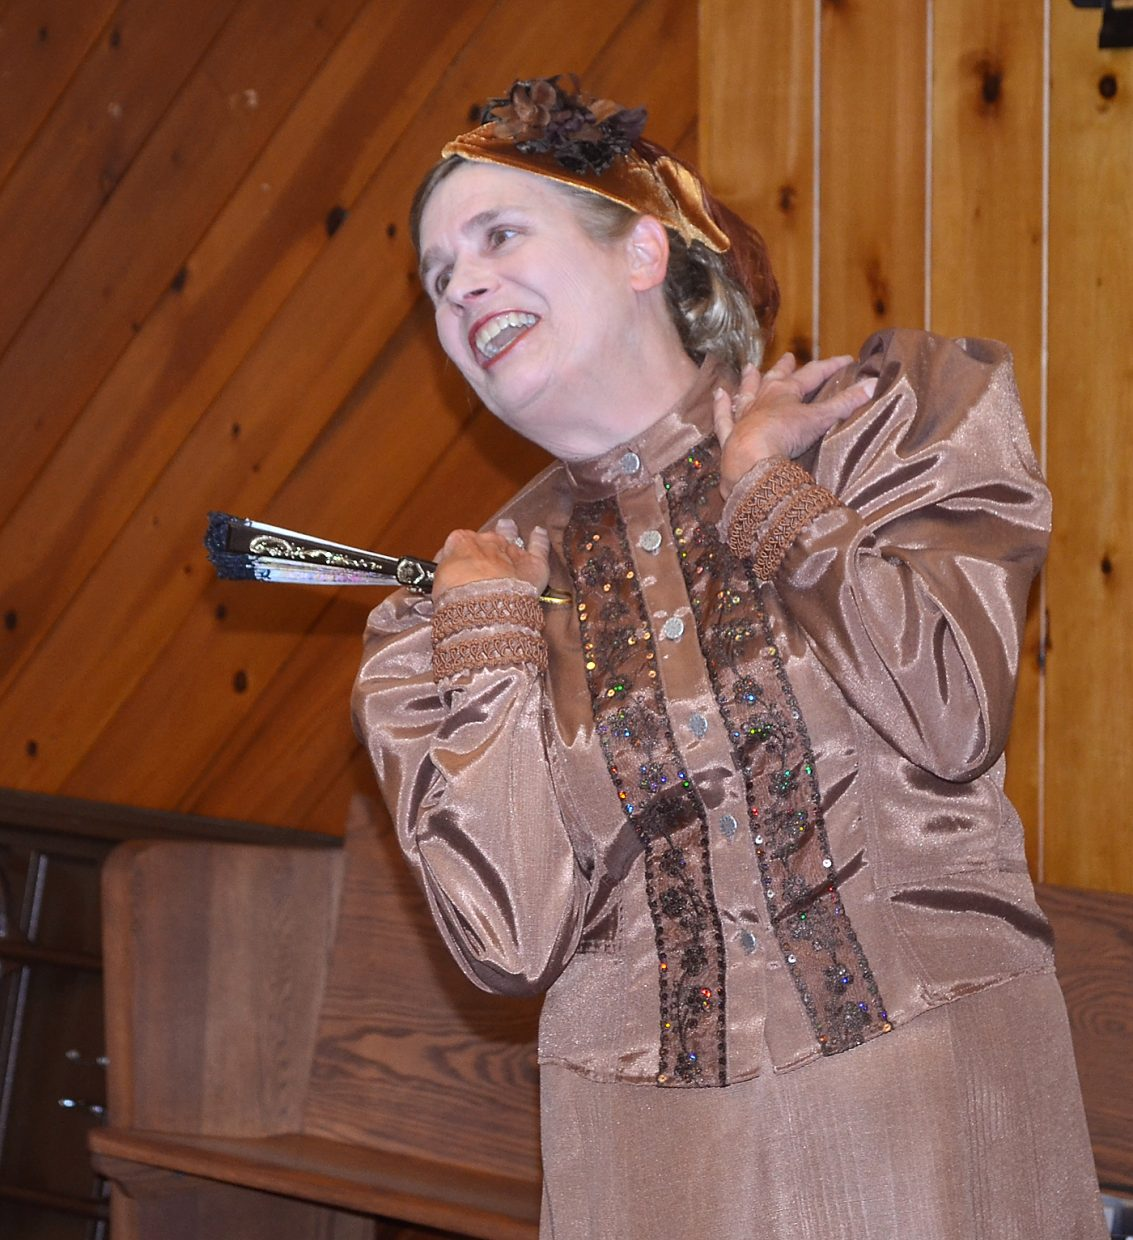 Ann Williams, of Pueblo, told a Steamboat audience during a Tread of Pioneers Museum brown bag lunch talk Friday how a member of the Wild Bunch of Butch Cassidy and the Sundance Kid fame met his end in a shootout with a posse outside the modern town of Parachute.